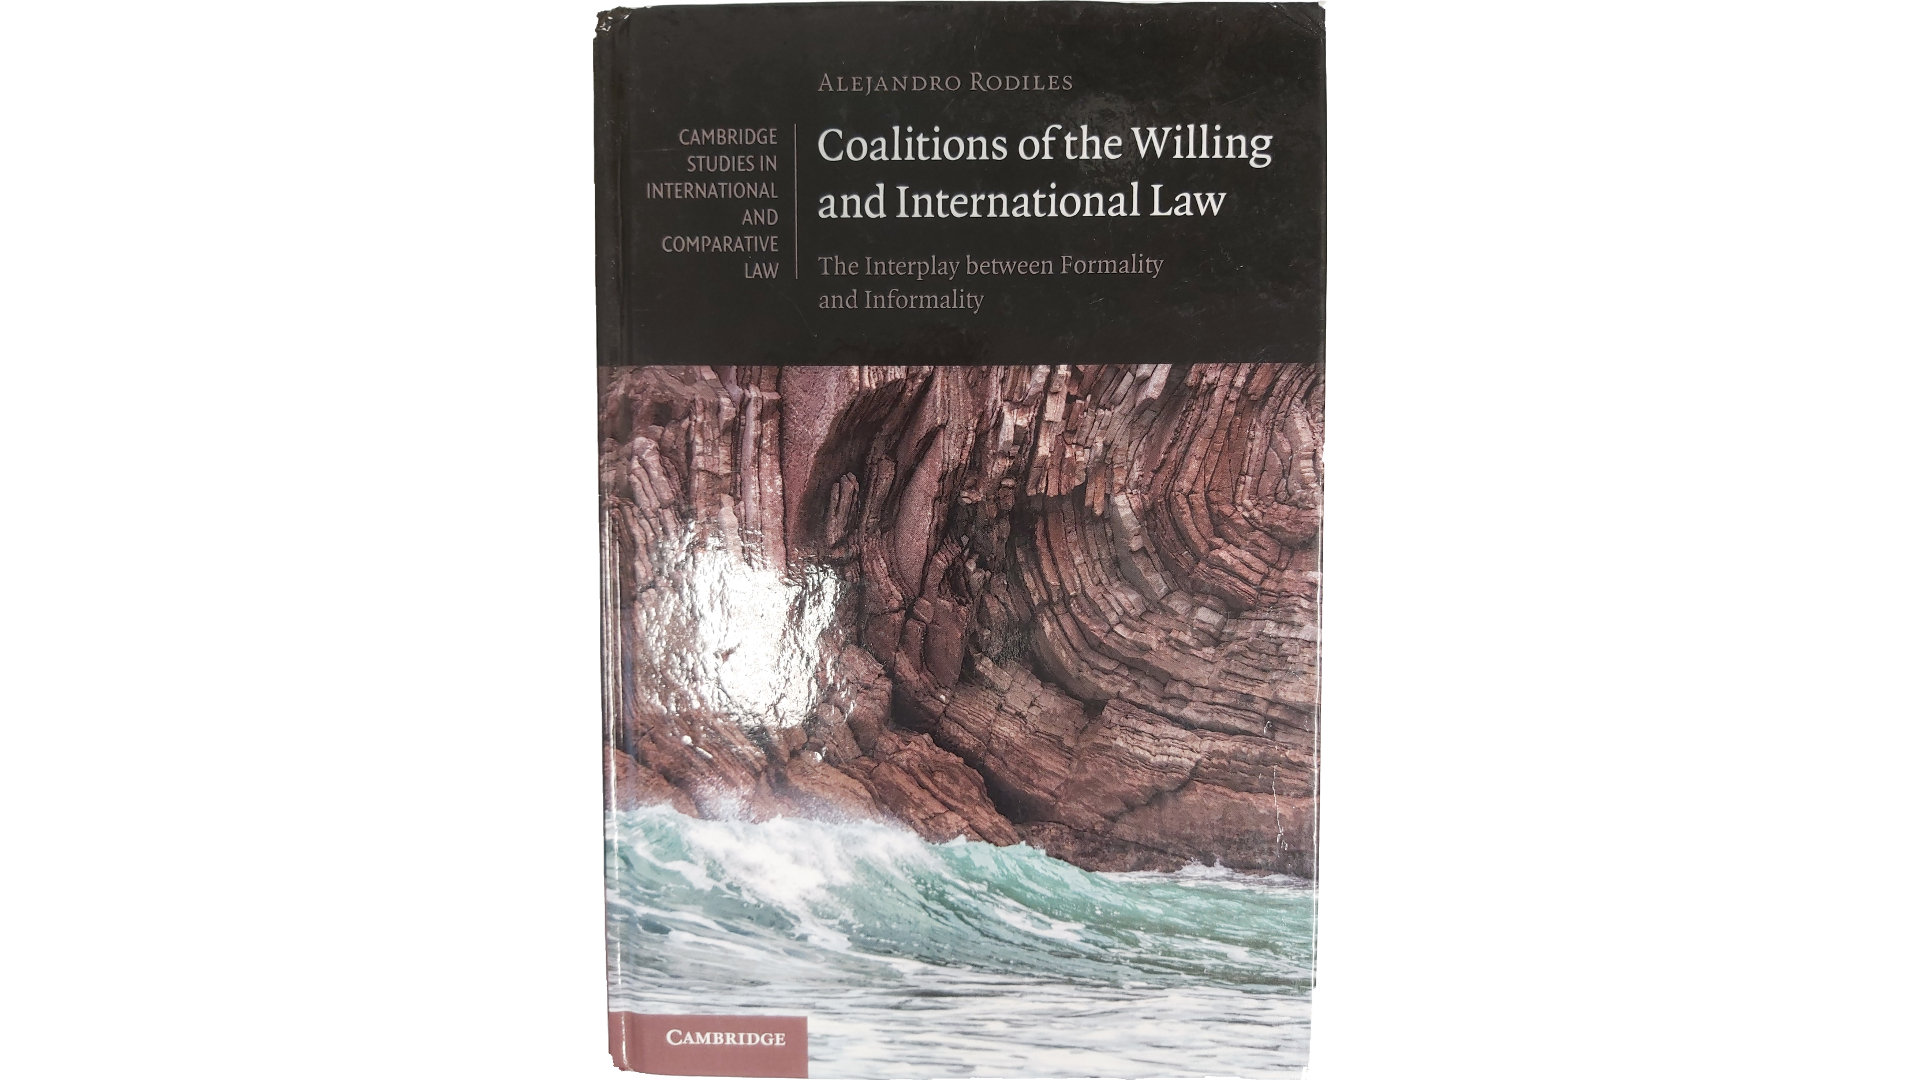 'Coalitions of the Willing and International Law' book cover